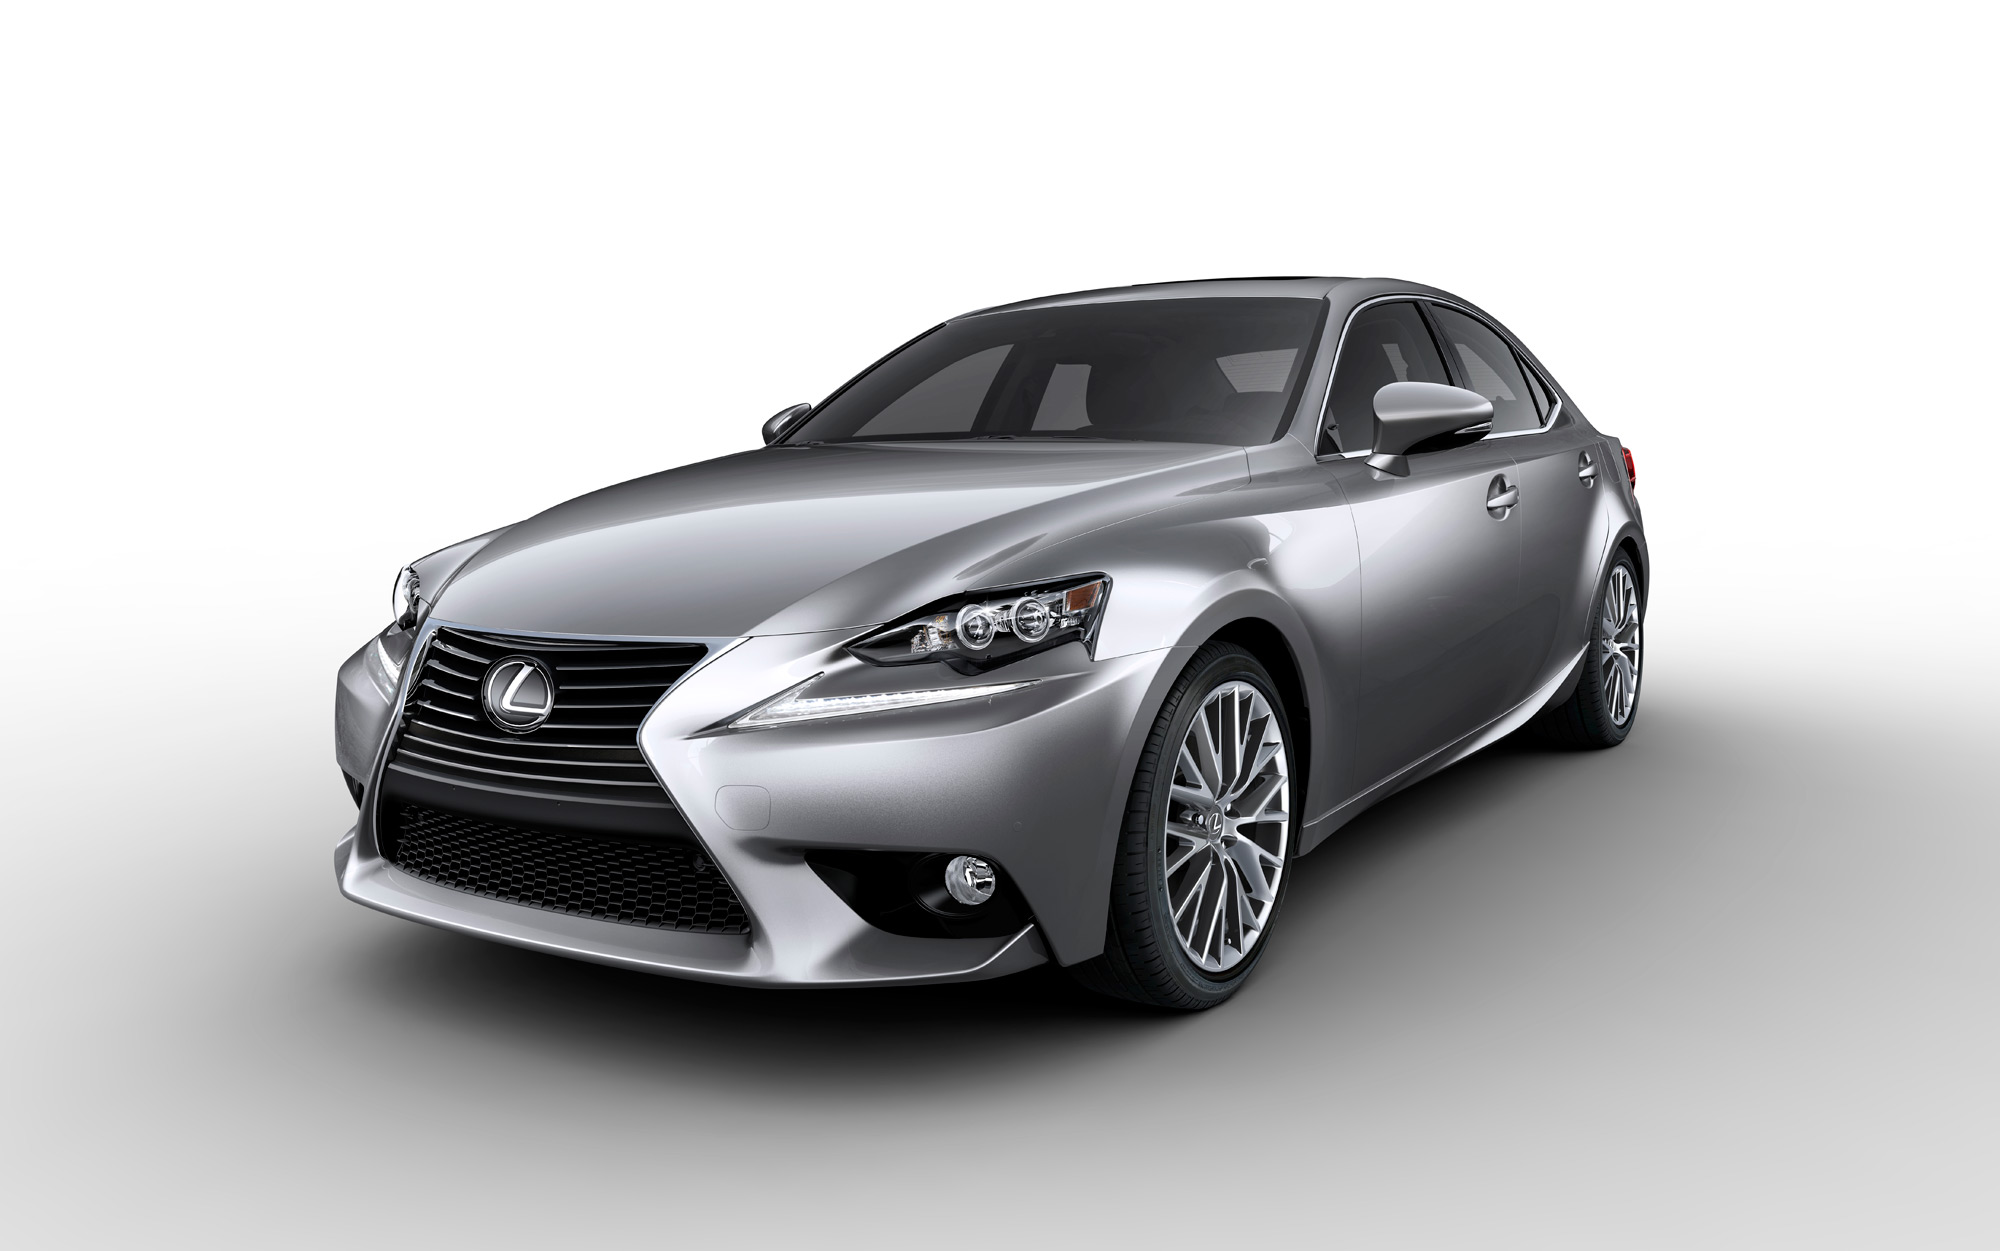 2014 Lexus IS 350 vs 2014 Infiniti G37